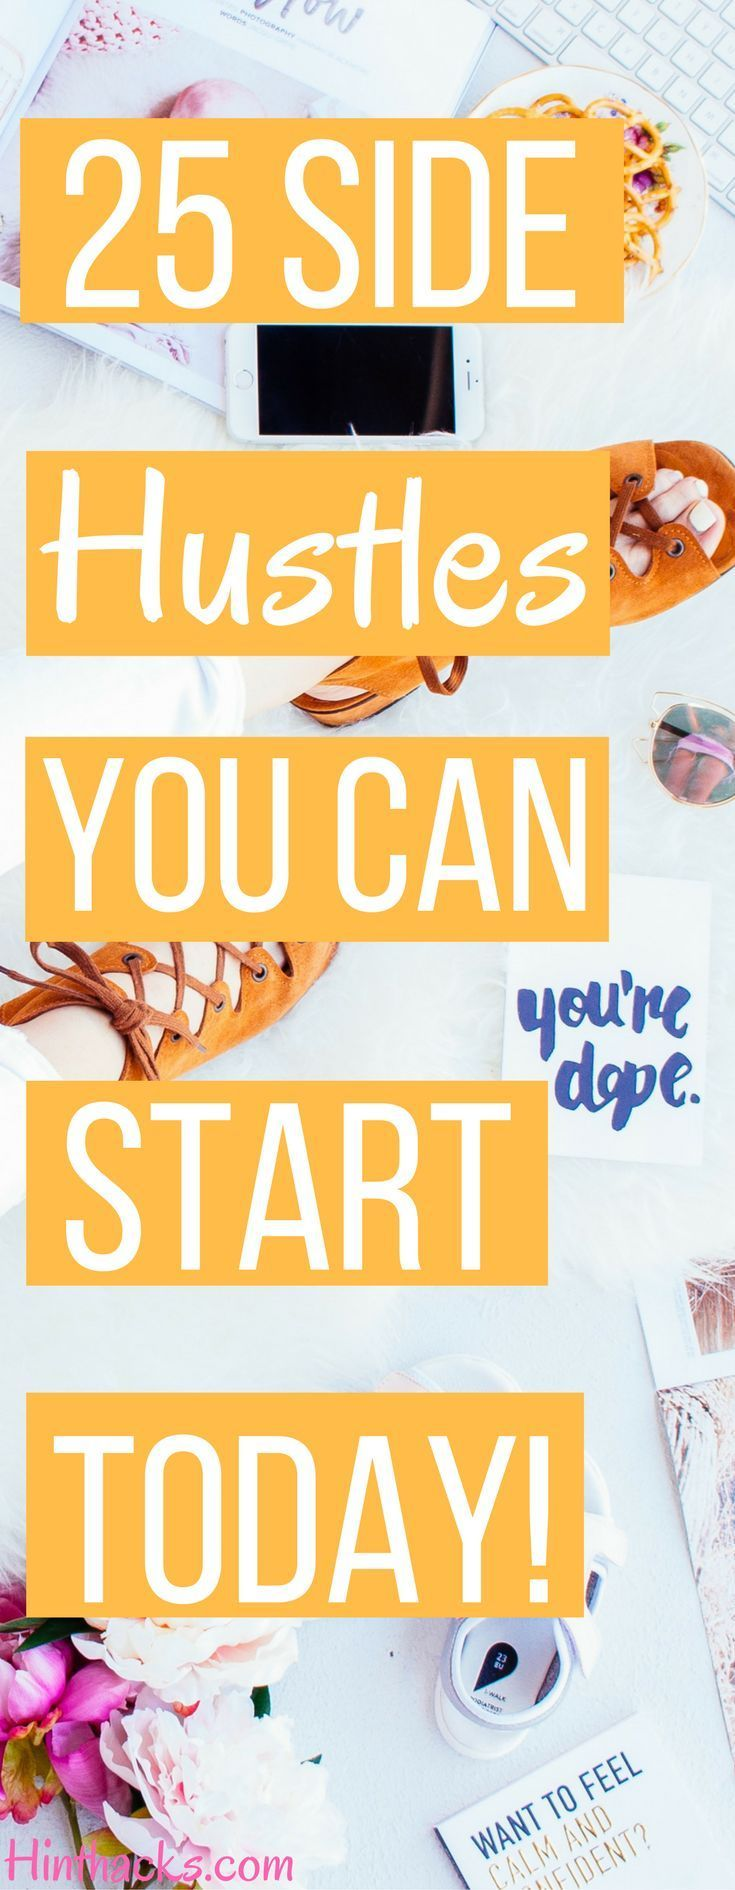 25 side hustles ideas | business ideas | extra money | passive income | side hustle nation | job ideas for teens | job ideas career | job ideas for moms | make money fast | start business online | stay at home mom jobs #followback #onlinebusiness #entrepreneur